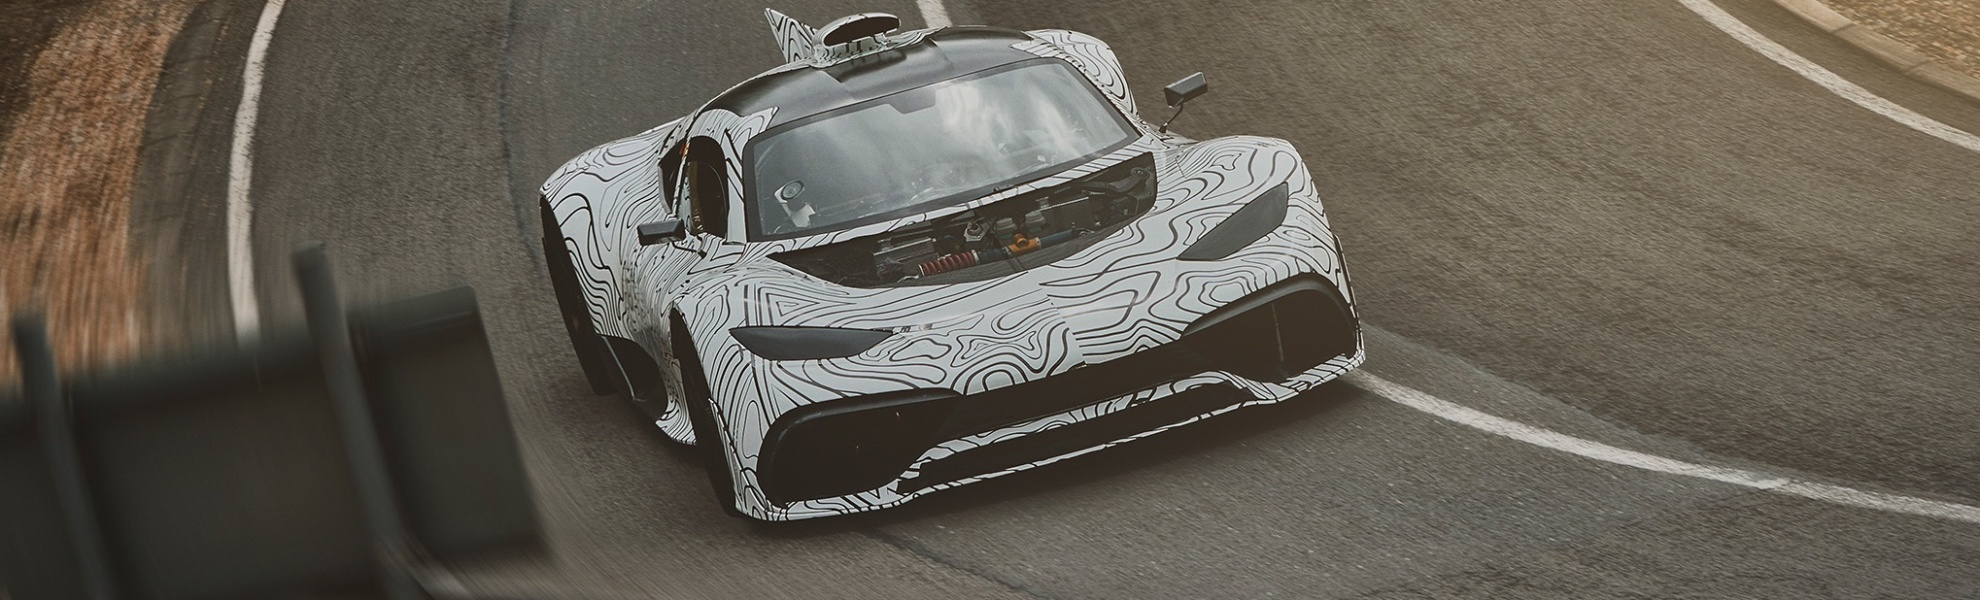 mercedes_amg_project_one_testes_4.jpg